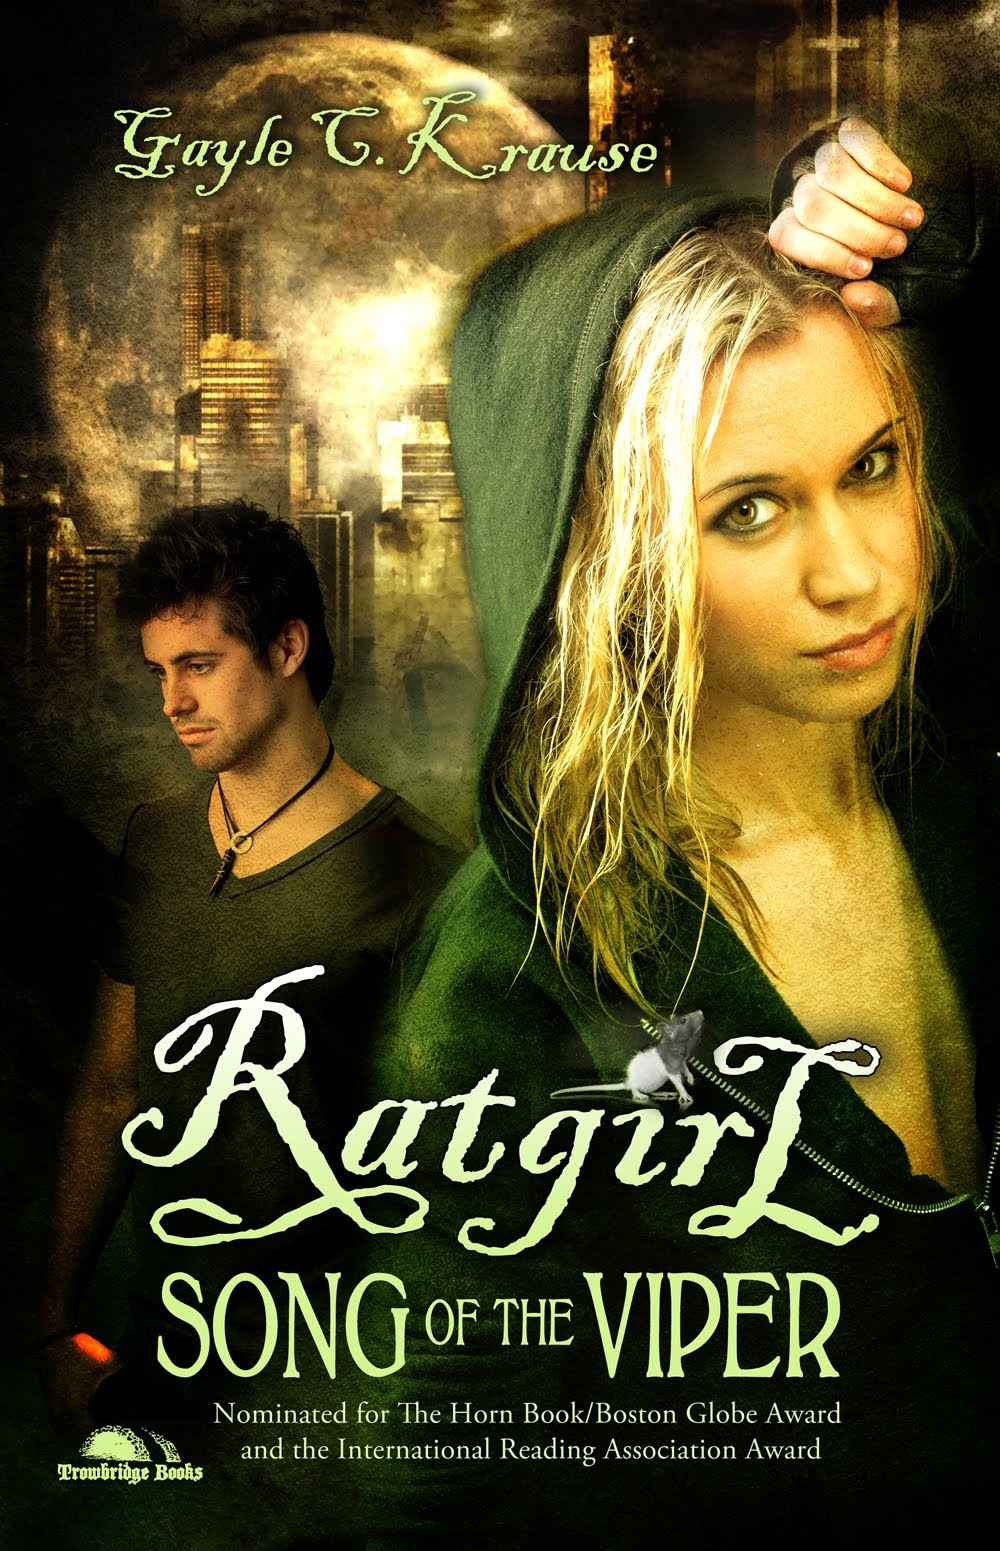 RATGIRL:Song of the Viper